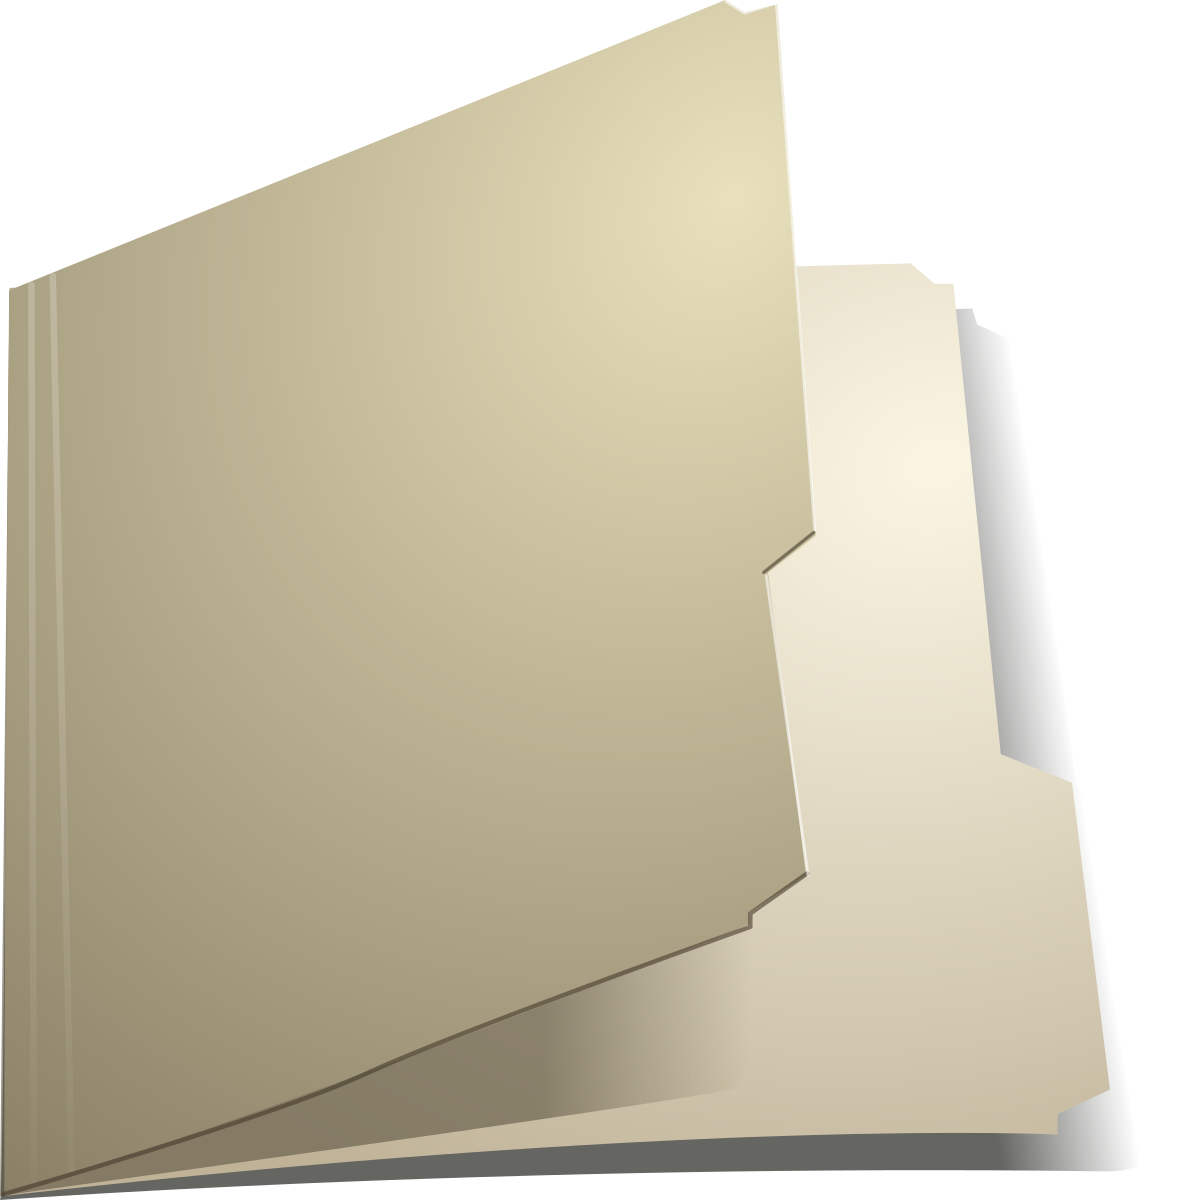 Transparent folders essay. Folder wiktionary